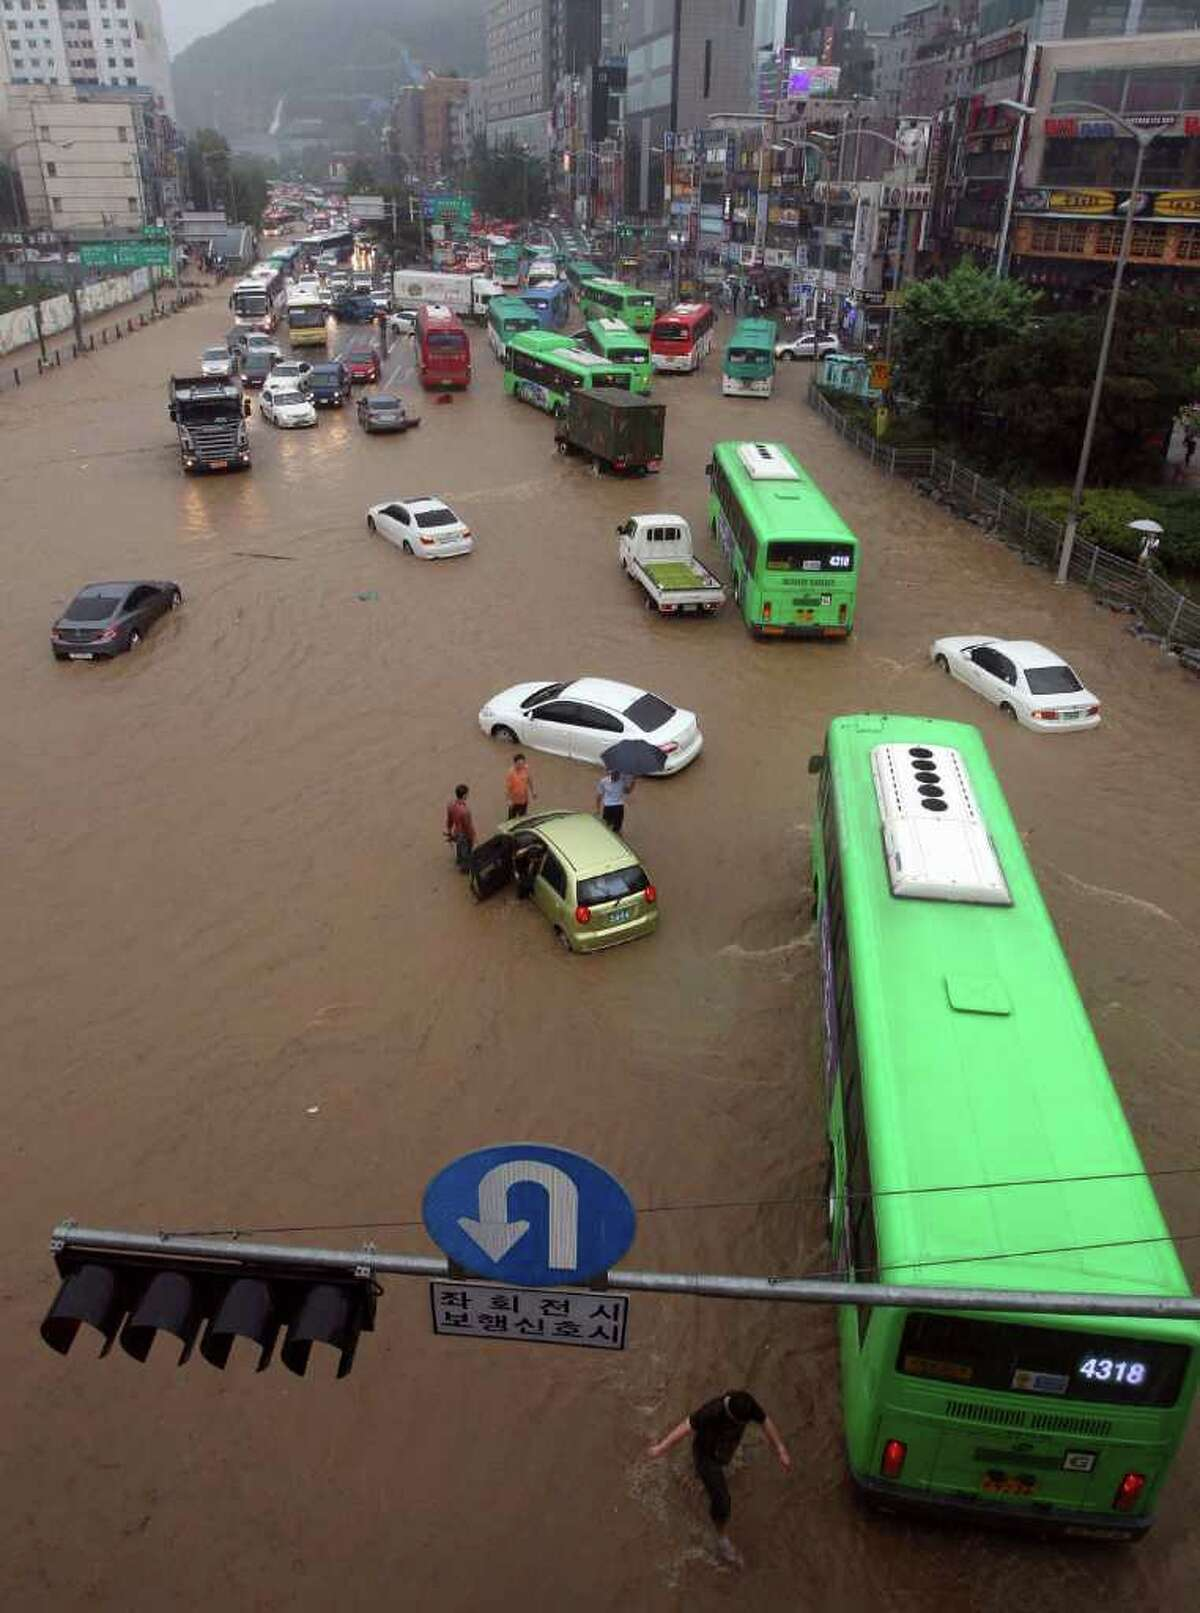 People drive vehicles through a flooded road in Seoul, South Korea, on Wednesday. Heavy rain sent a landslide barreling into a resort in Chuncheon, a northern South Korean town Wednesday. (AP Photo/Lim Hun-jung)